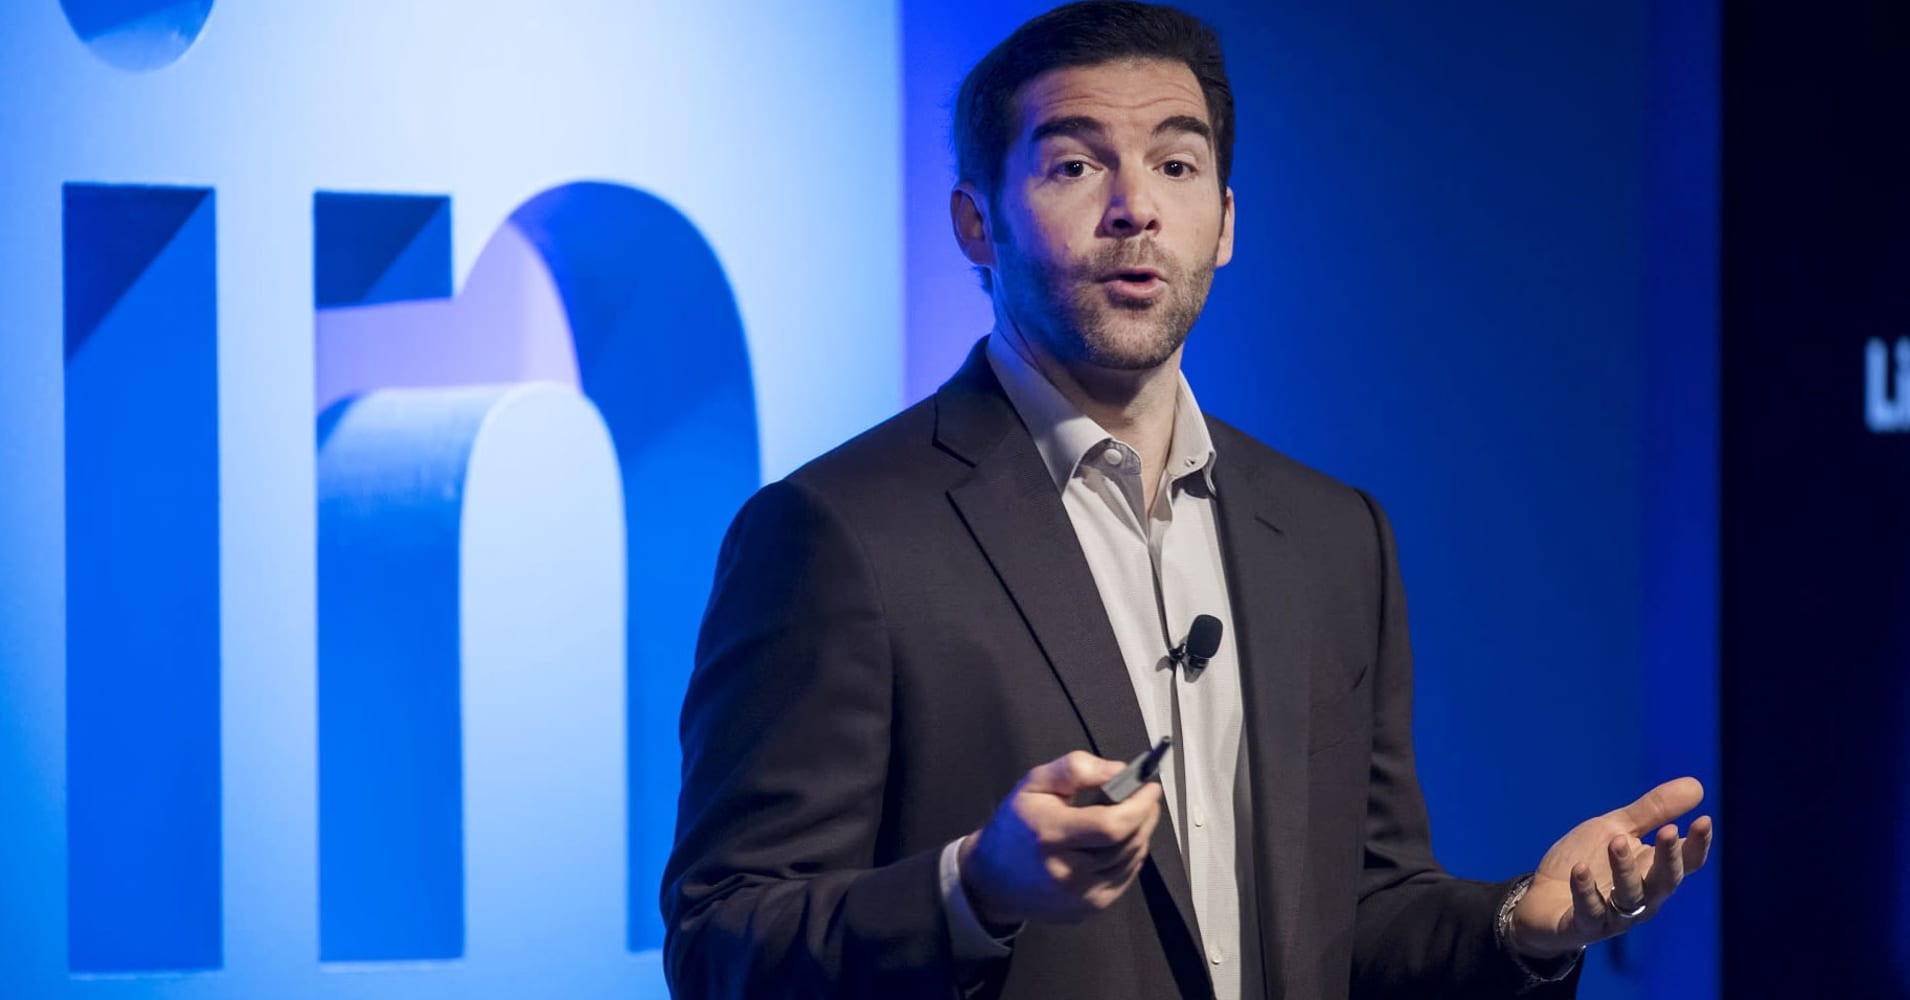 Jeffrey 'Jeff' Weiner, chief executive officer of LinkedIn Corp., speaks during an event at the company's headquarters in San Francisco, California, U.S., on Thursday, Sept. 22, 2016.